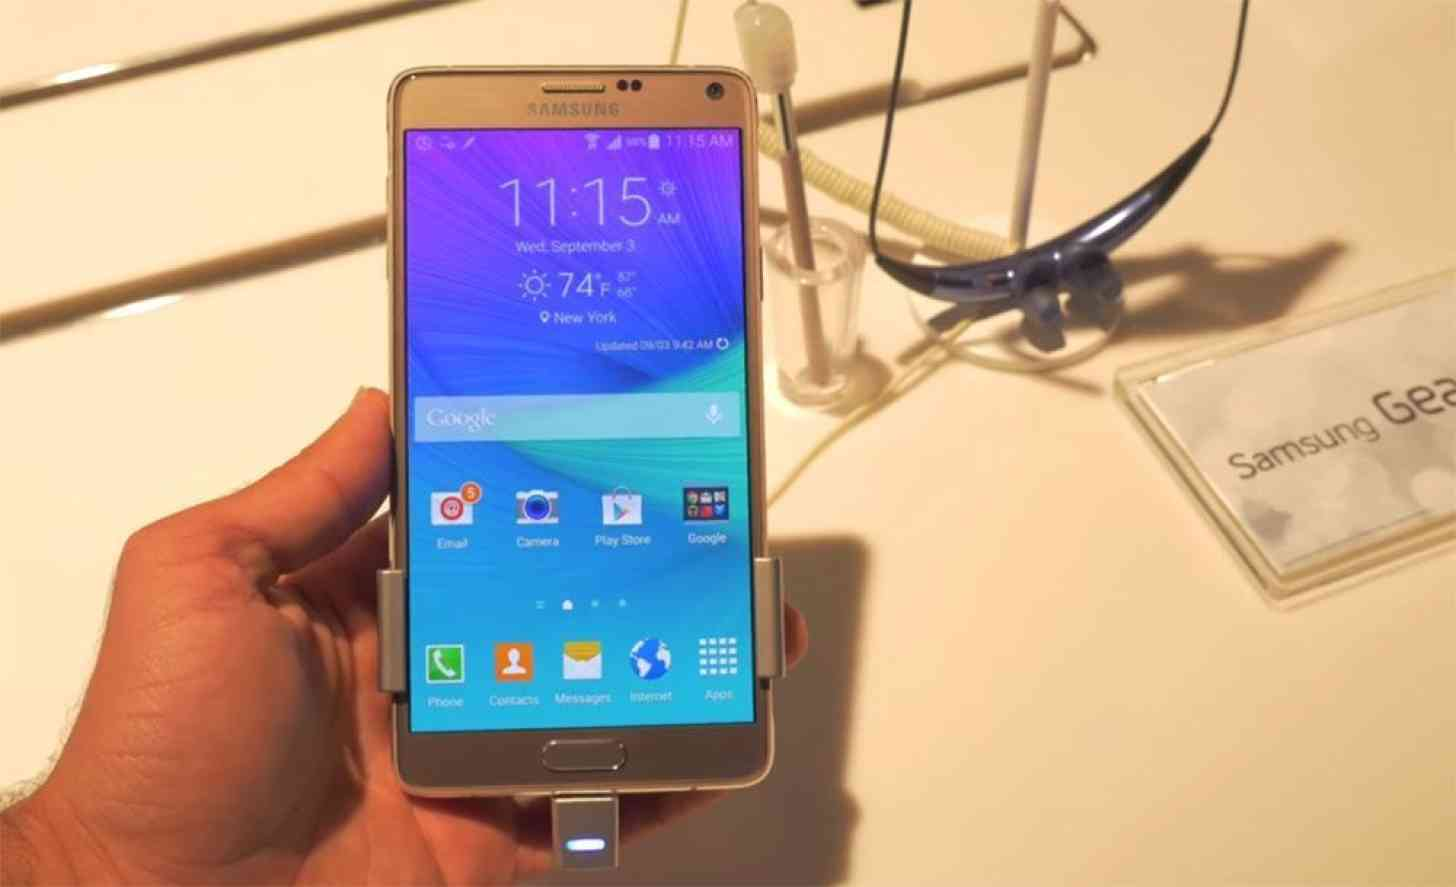 Samsung Galaxy Note 4 hands on video